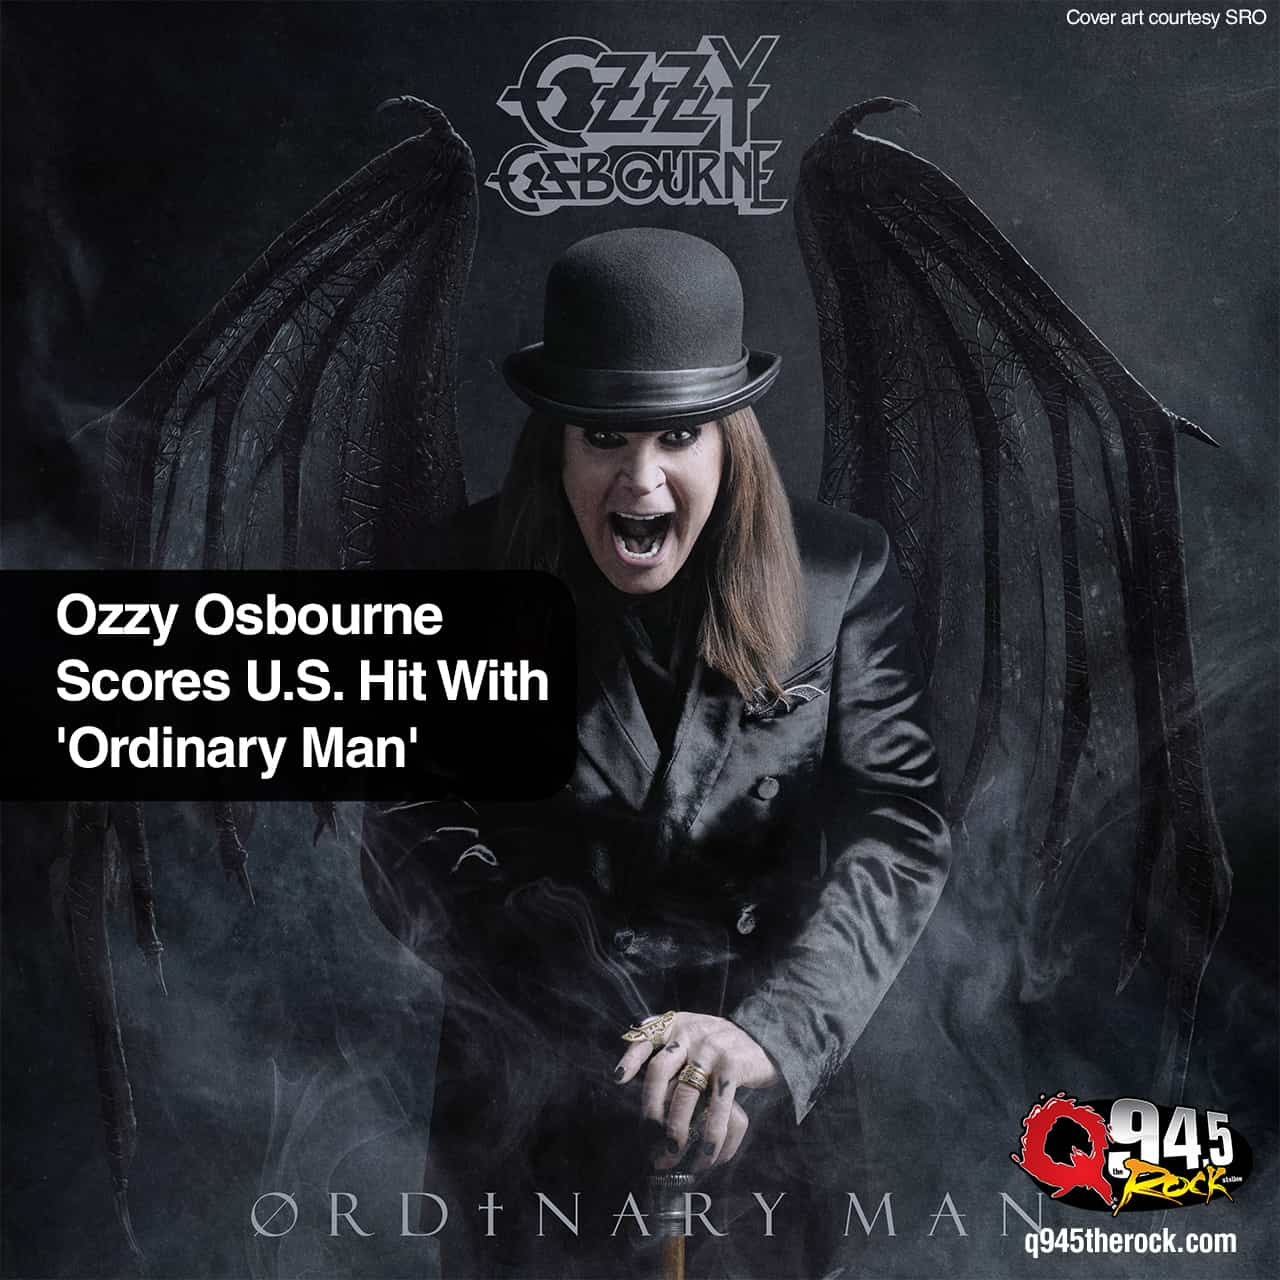 Ozzy Osbourne Scores U.S. Hit With 'Ordinary Man'